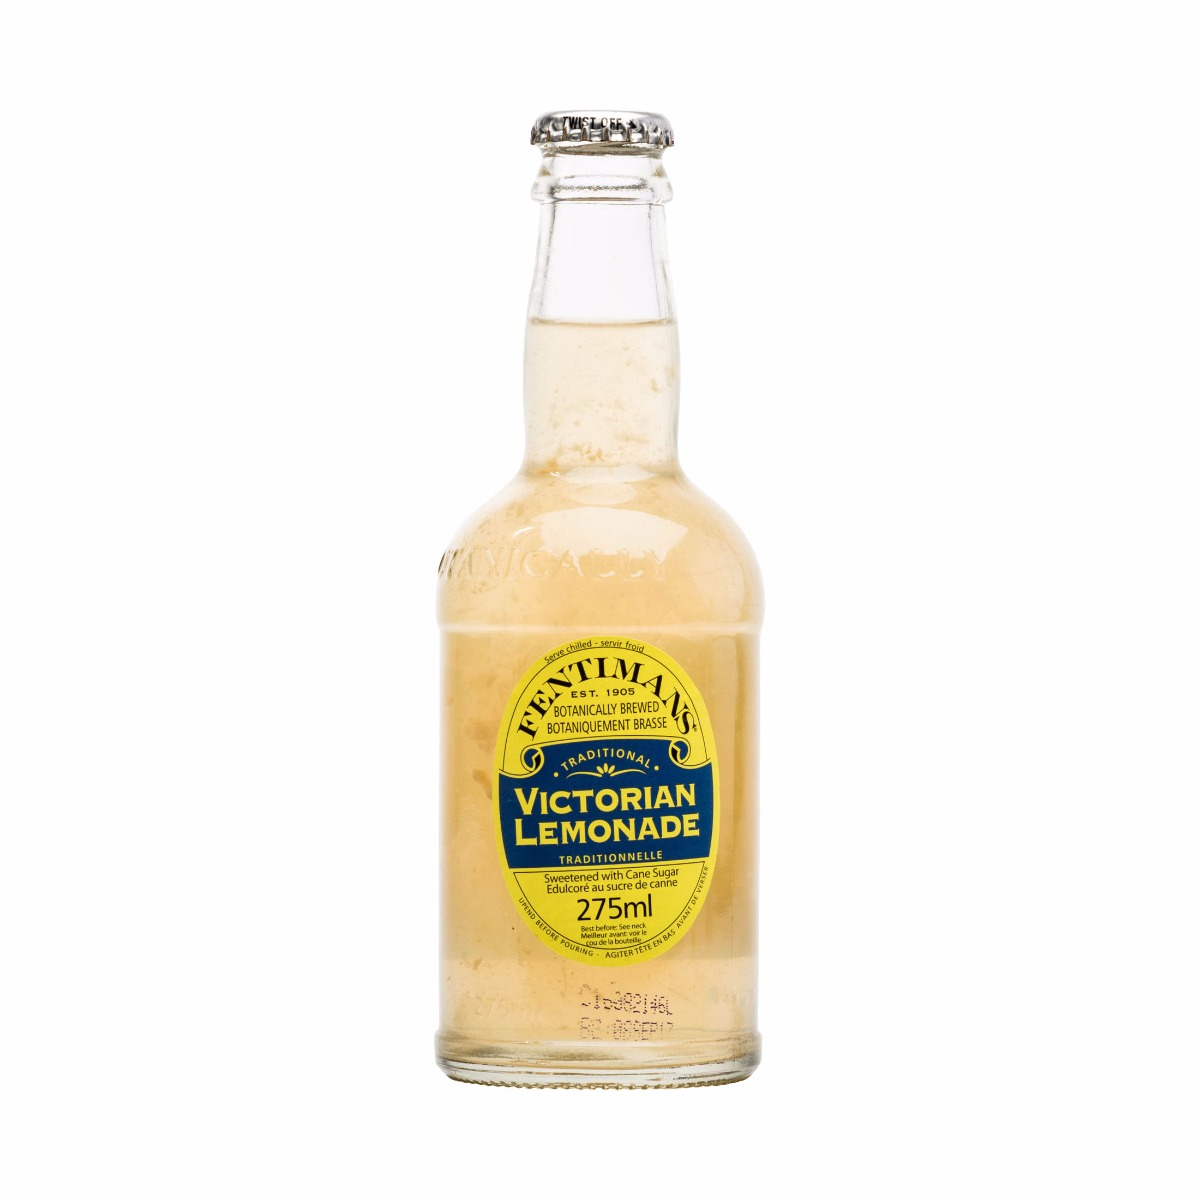 VICTORIAN LEMONADE 275ML